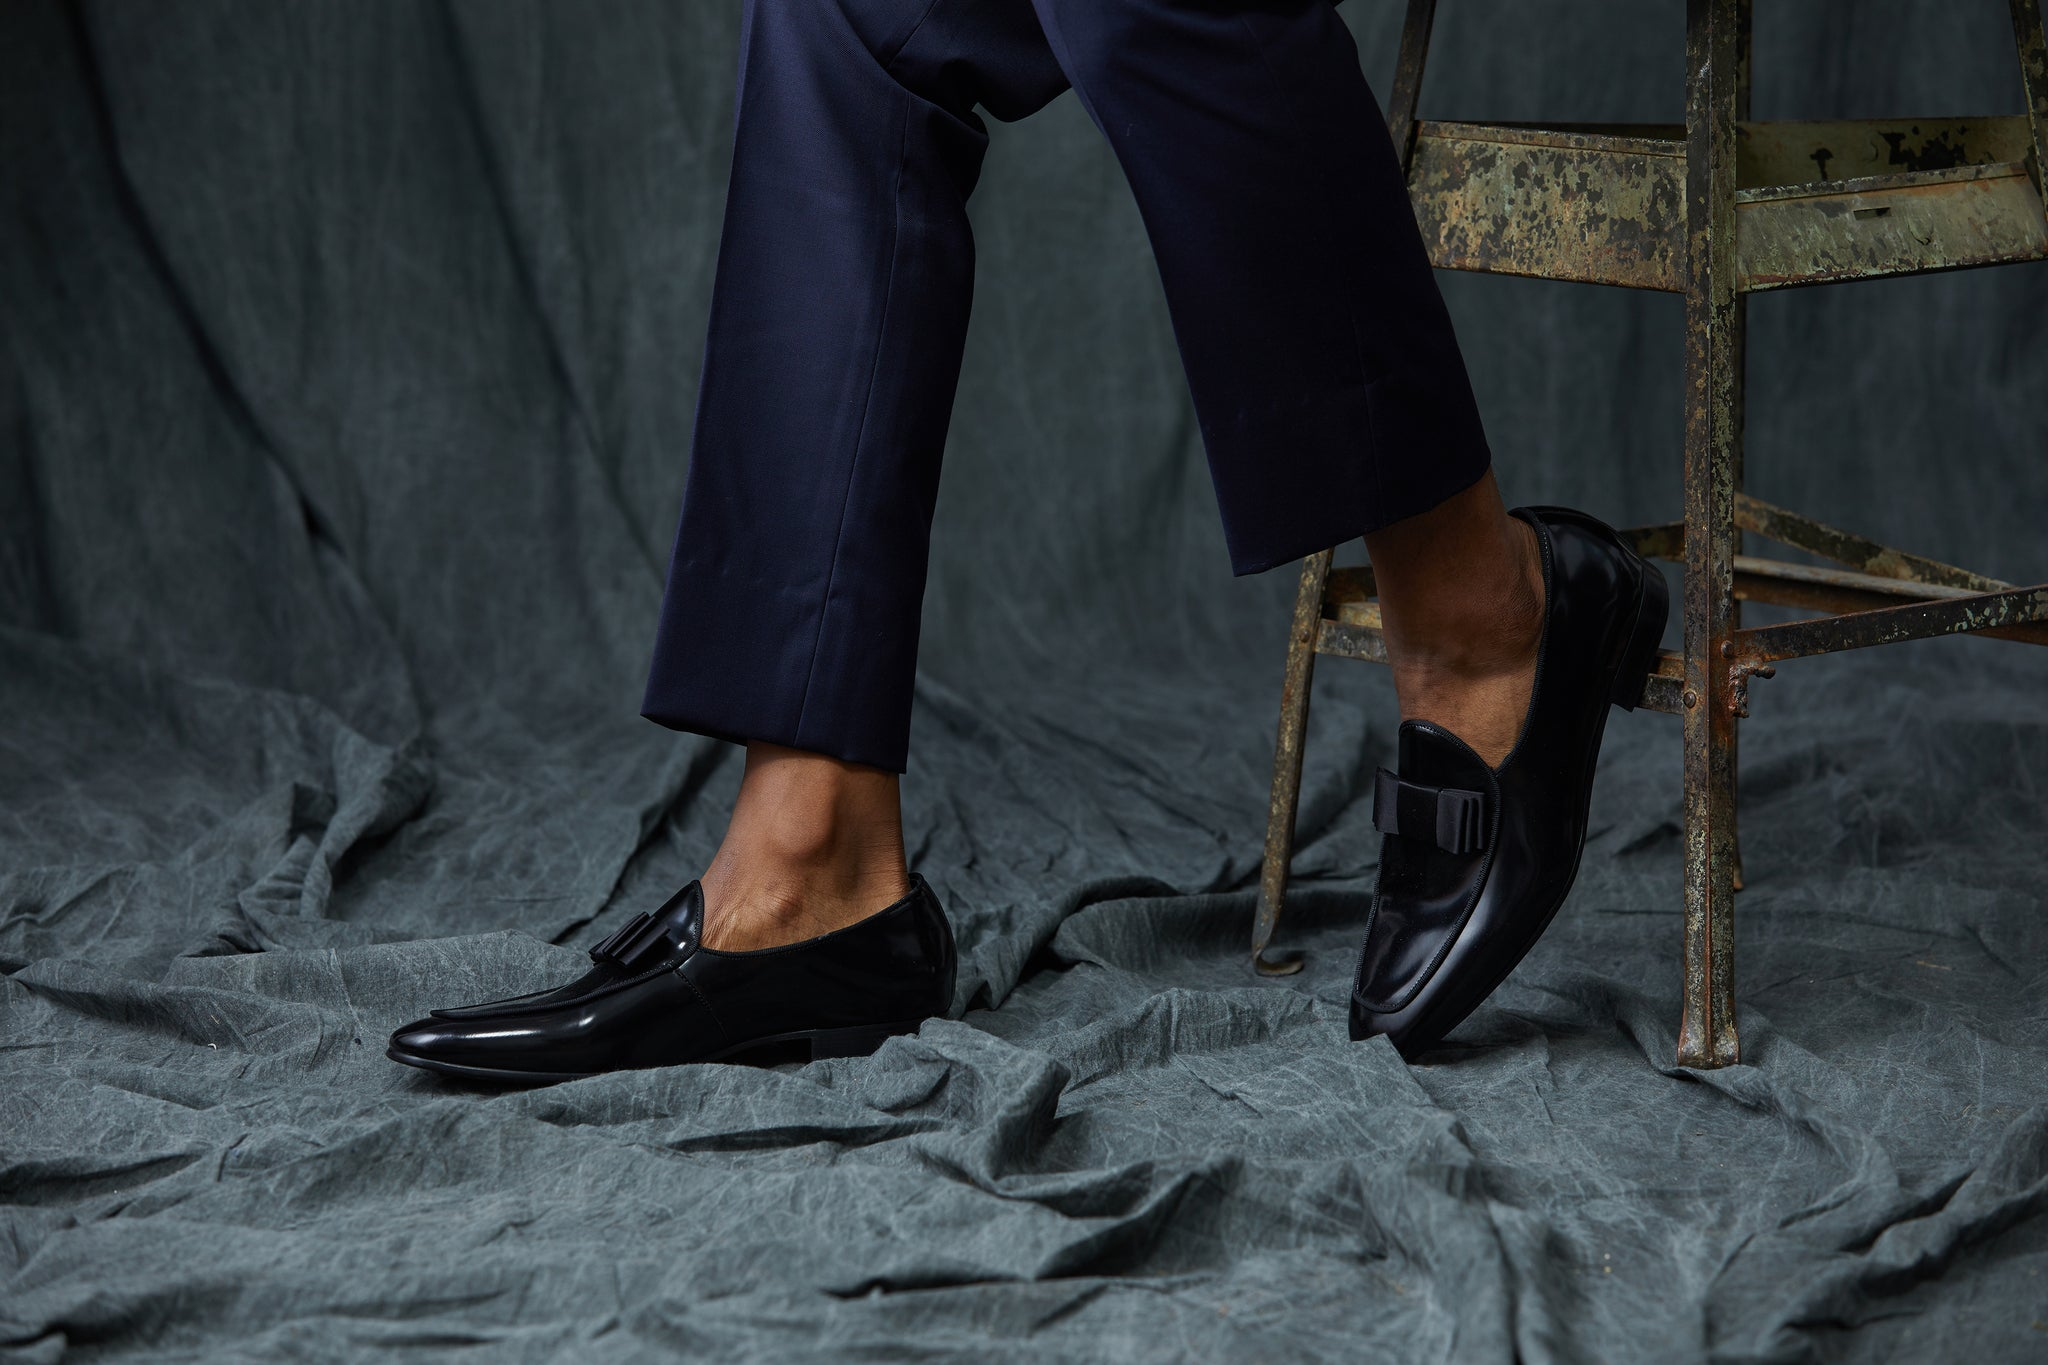 Types of Shoes to Wear with a Tuxedo